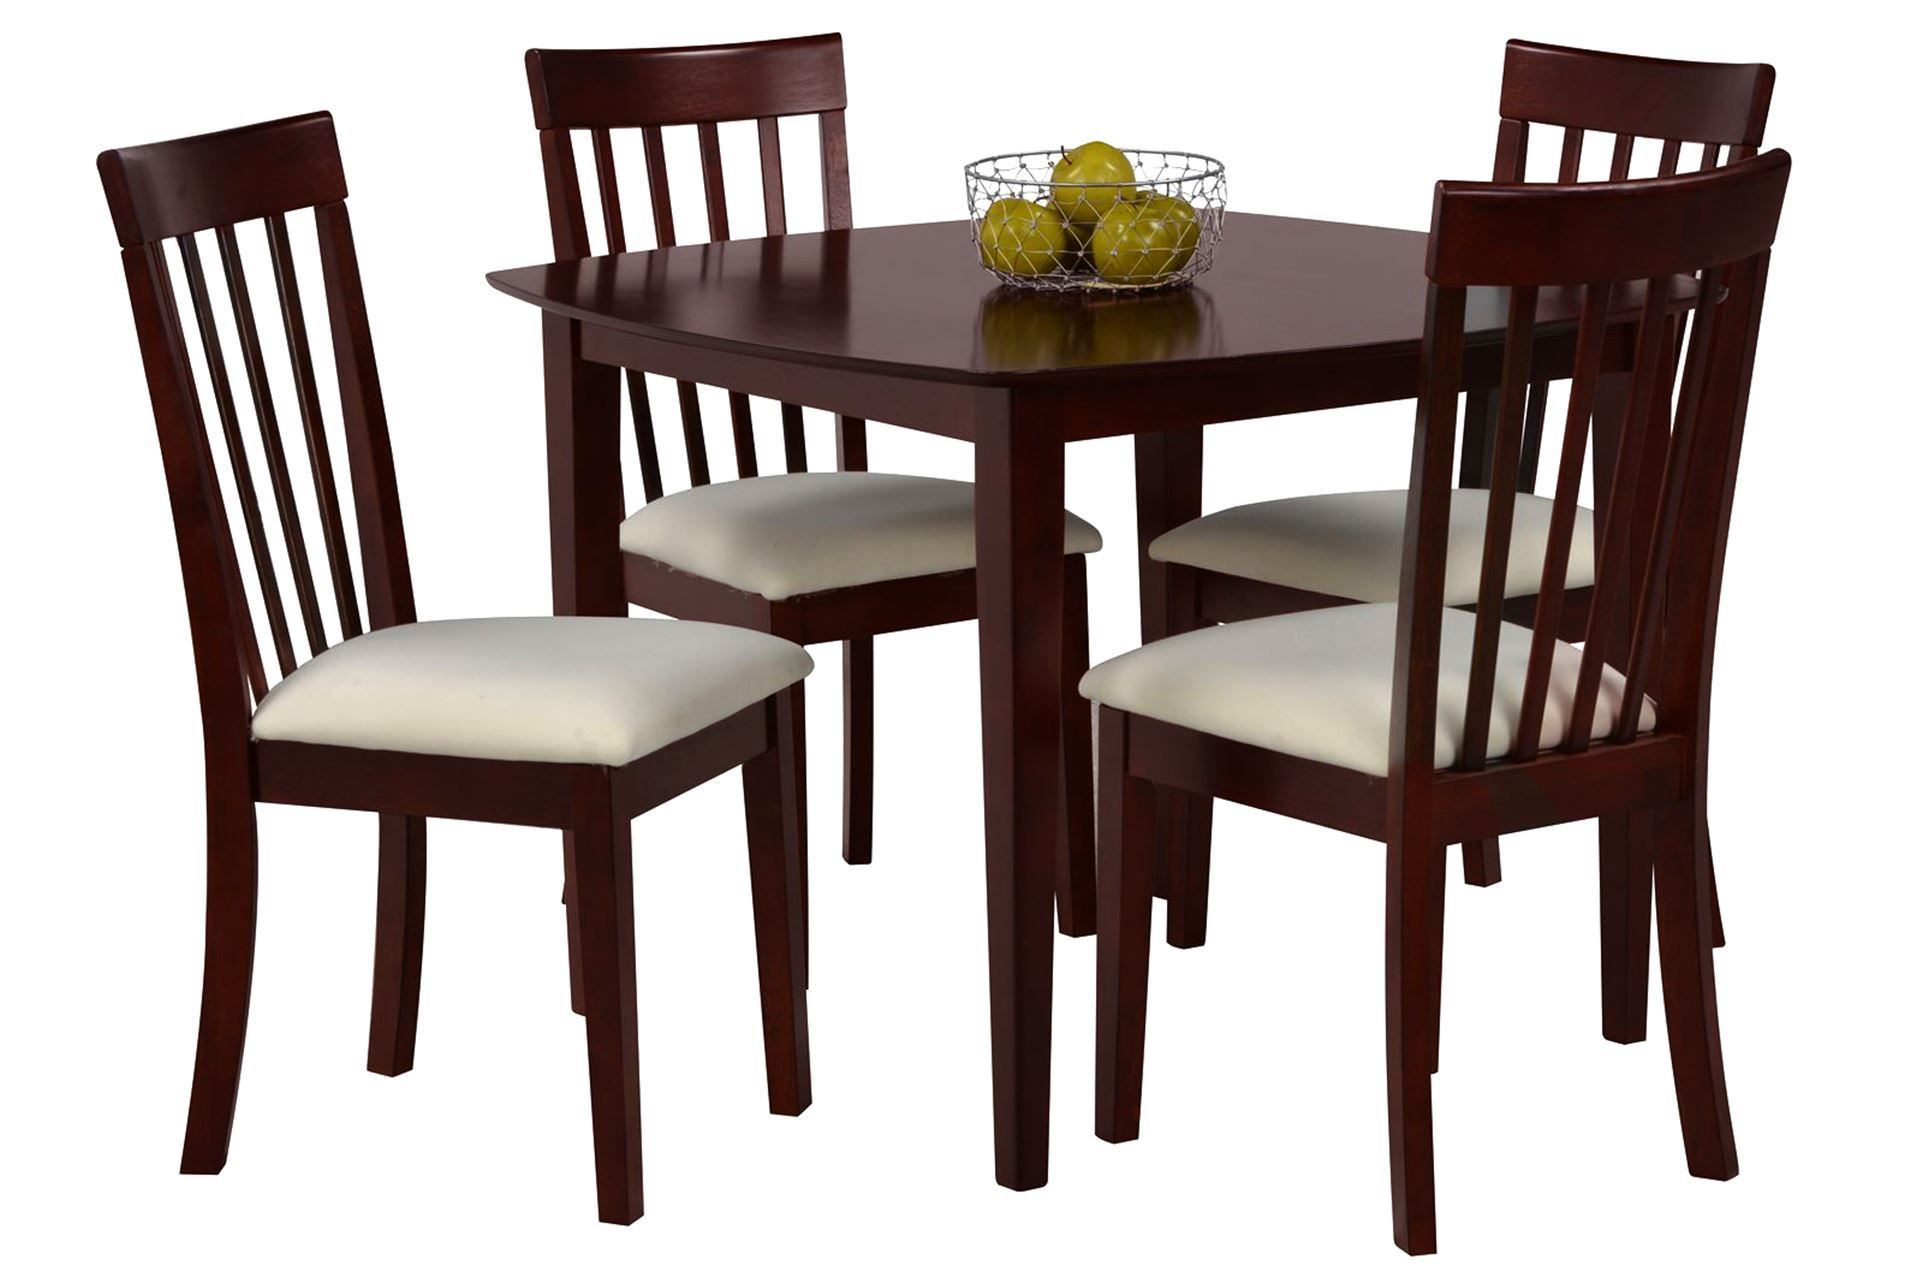 It's also a time most of us chose to renew your garden furniture. Ross 5 Piece Dining Set   Living spaces furniture, Dining ...